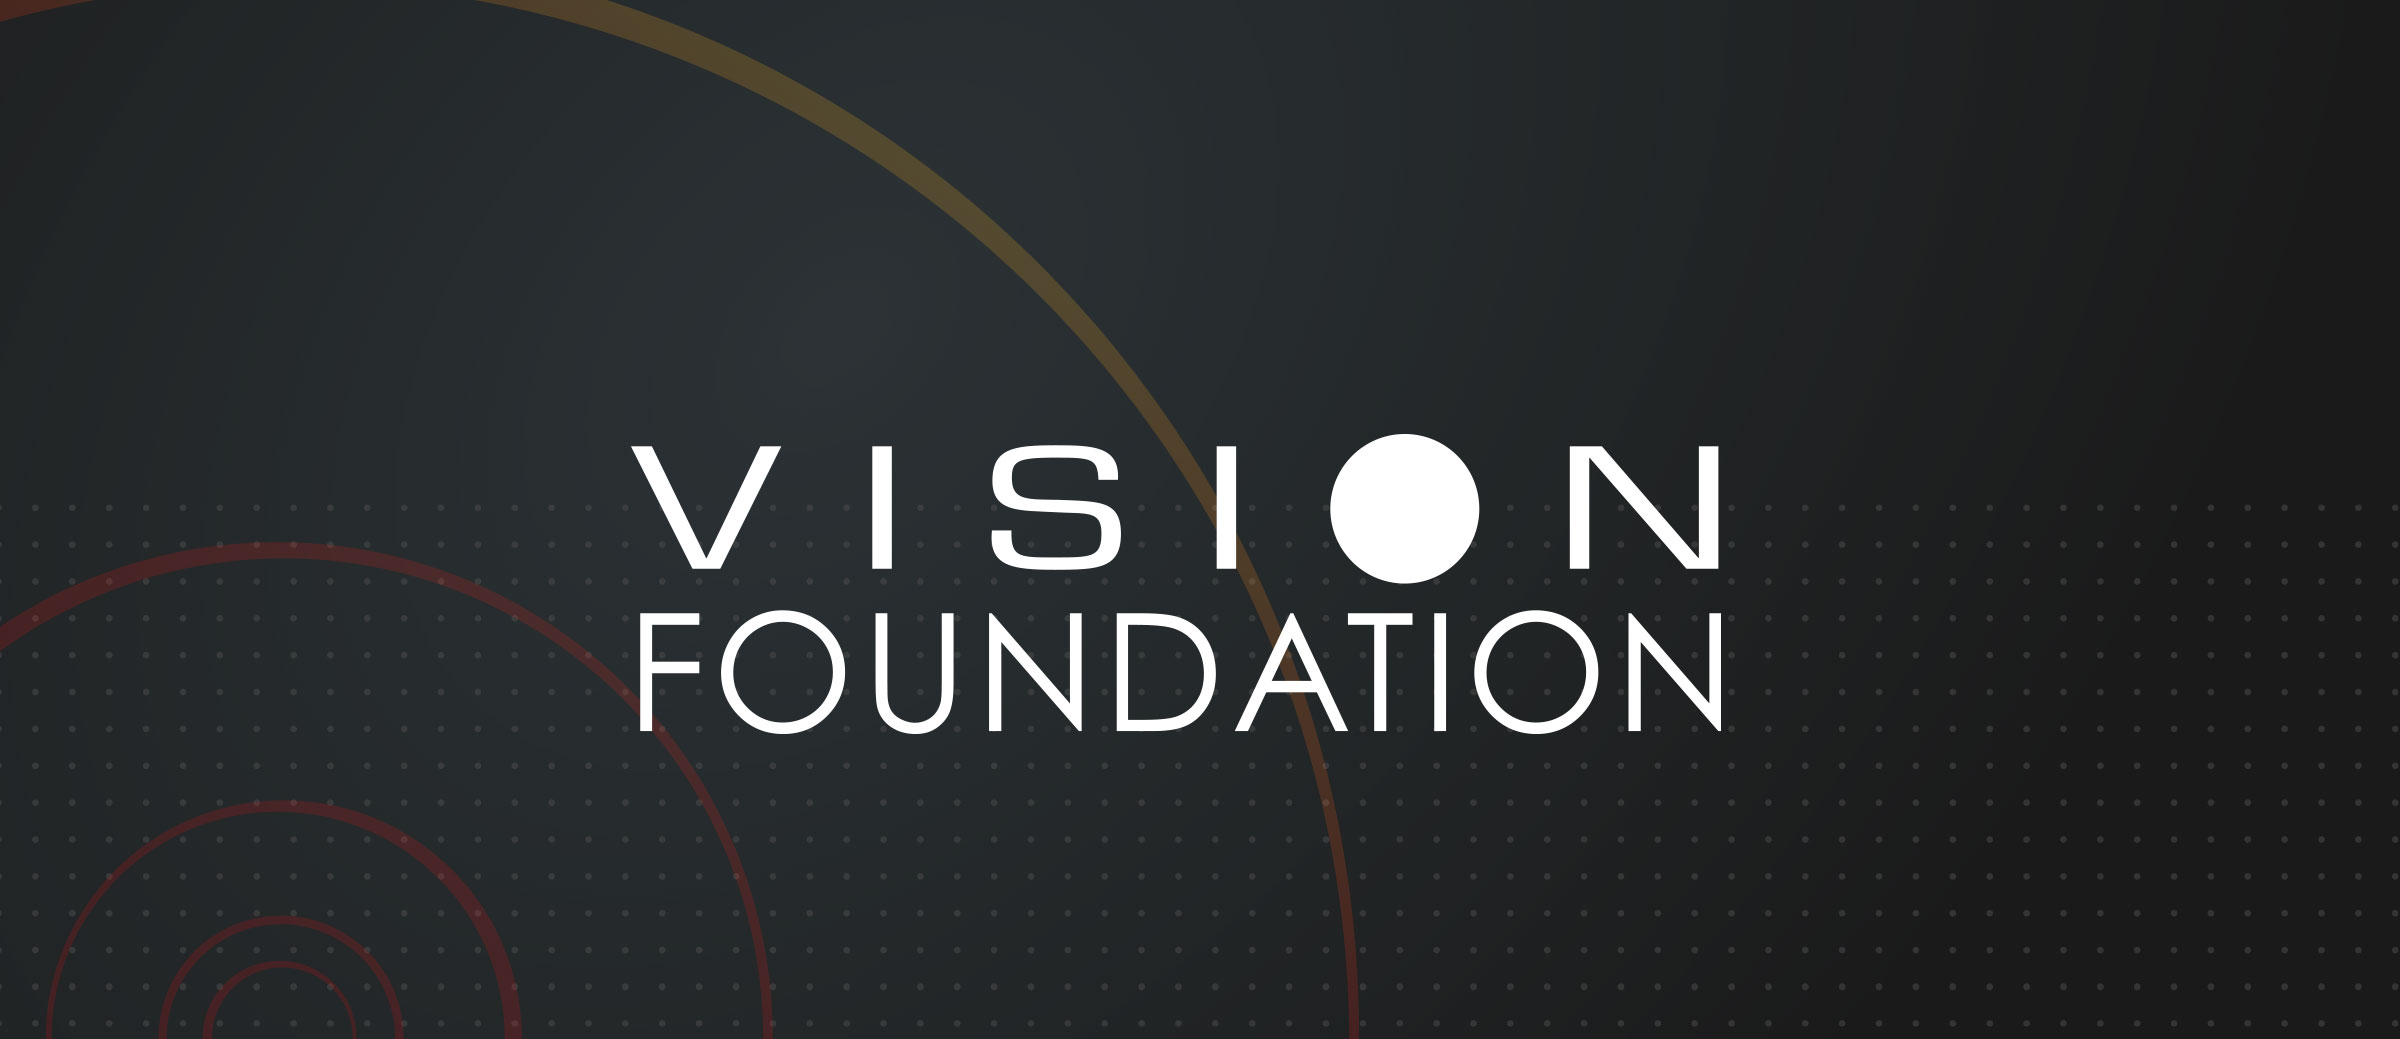 vision-foundation-banner